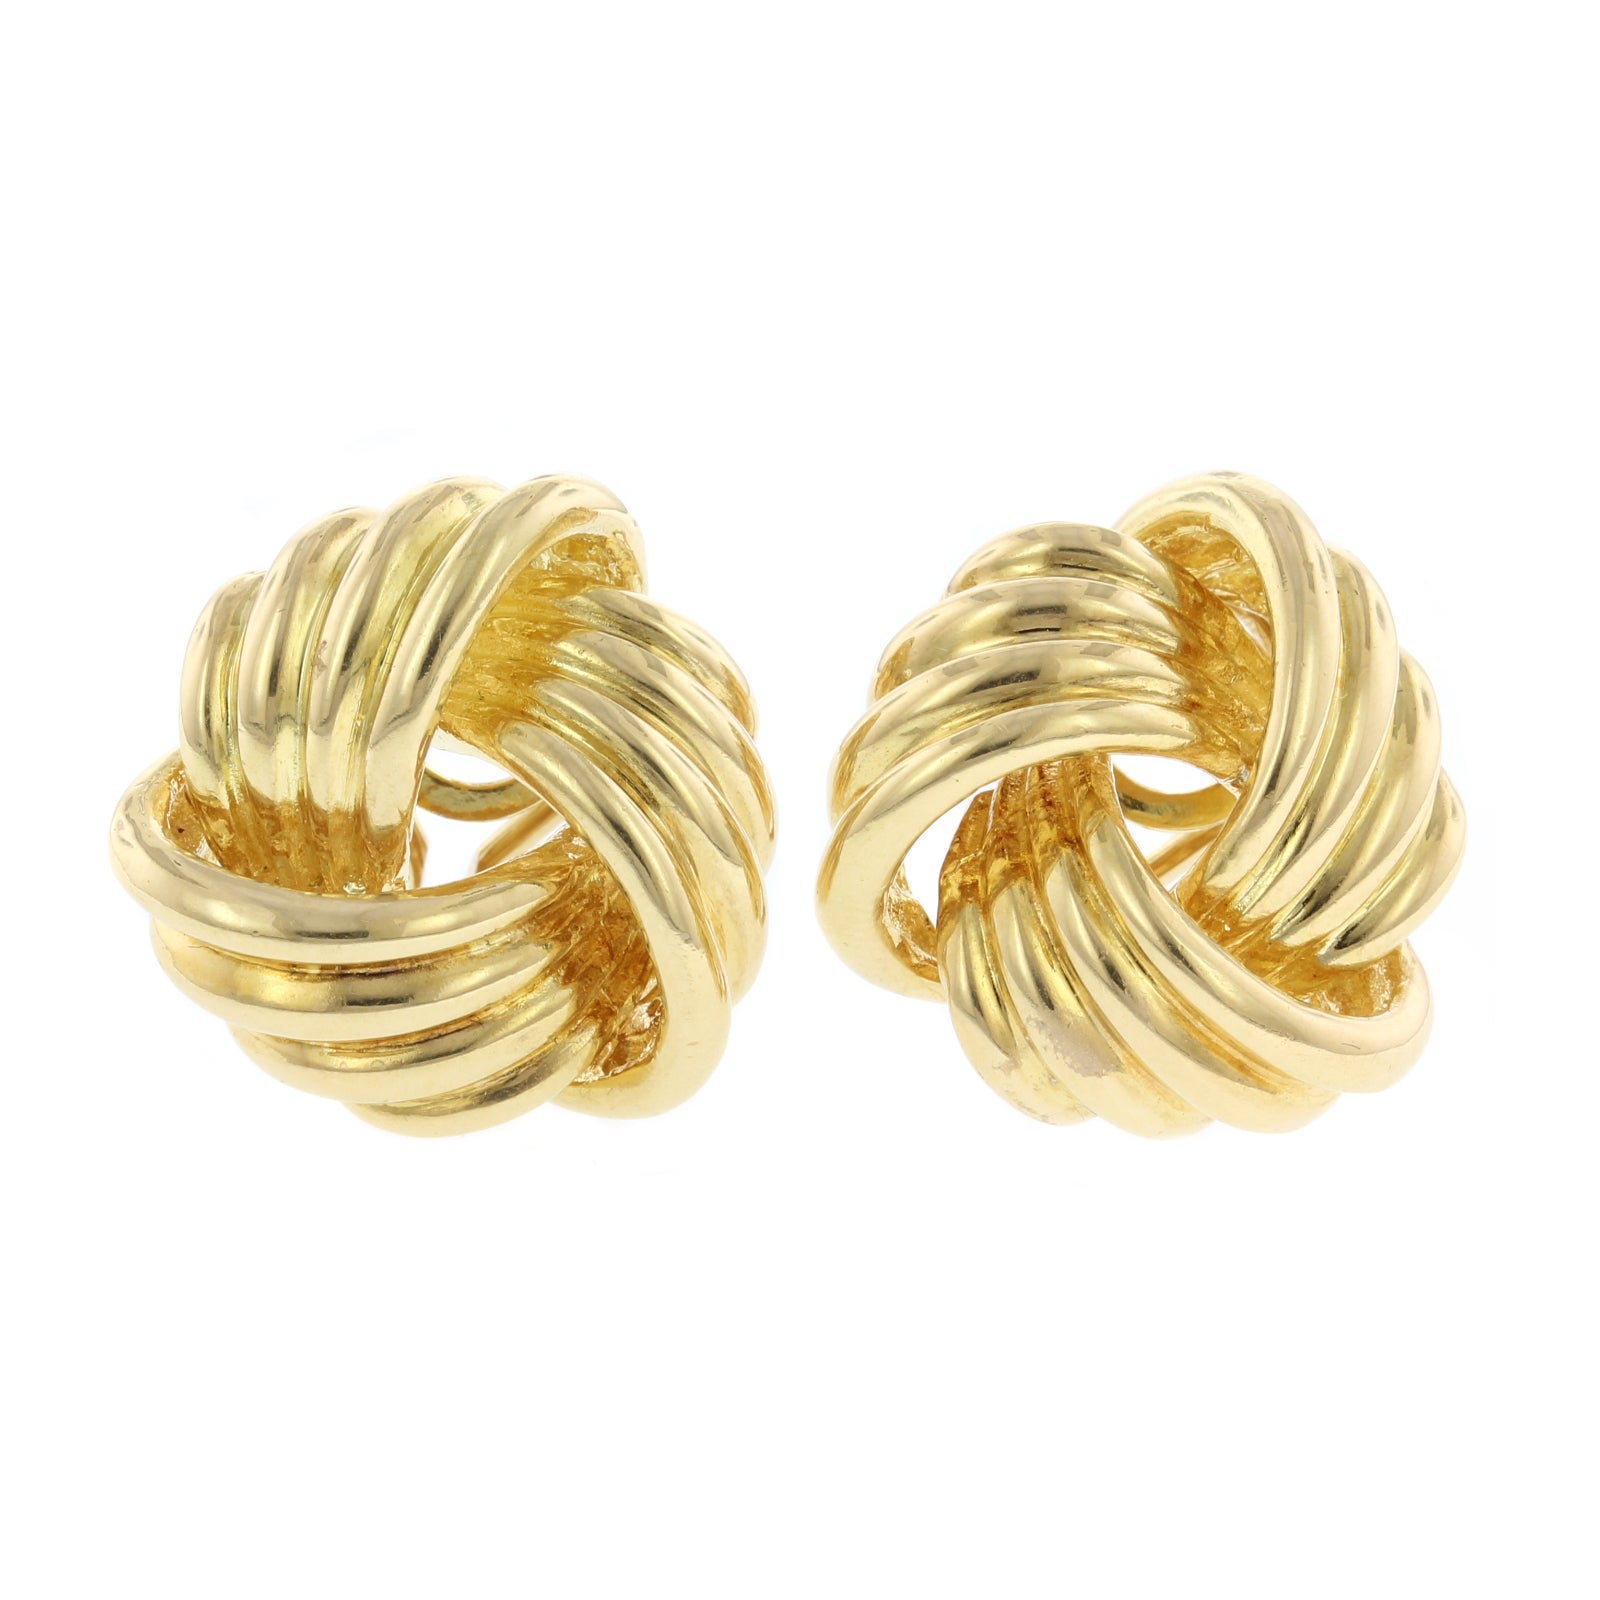 c65fc753a Tiffany and Co. 18 Karat Yellow Gold Love Knot Earrings at 1stdibs